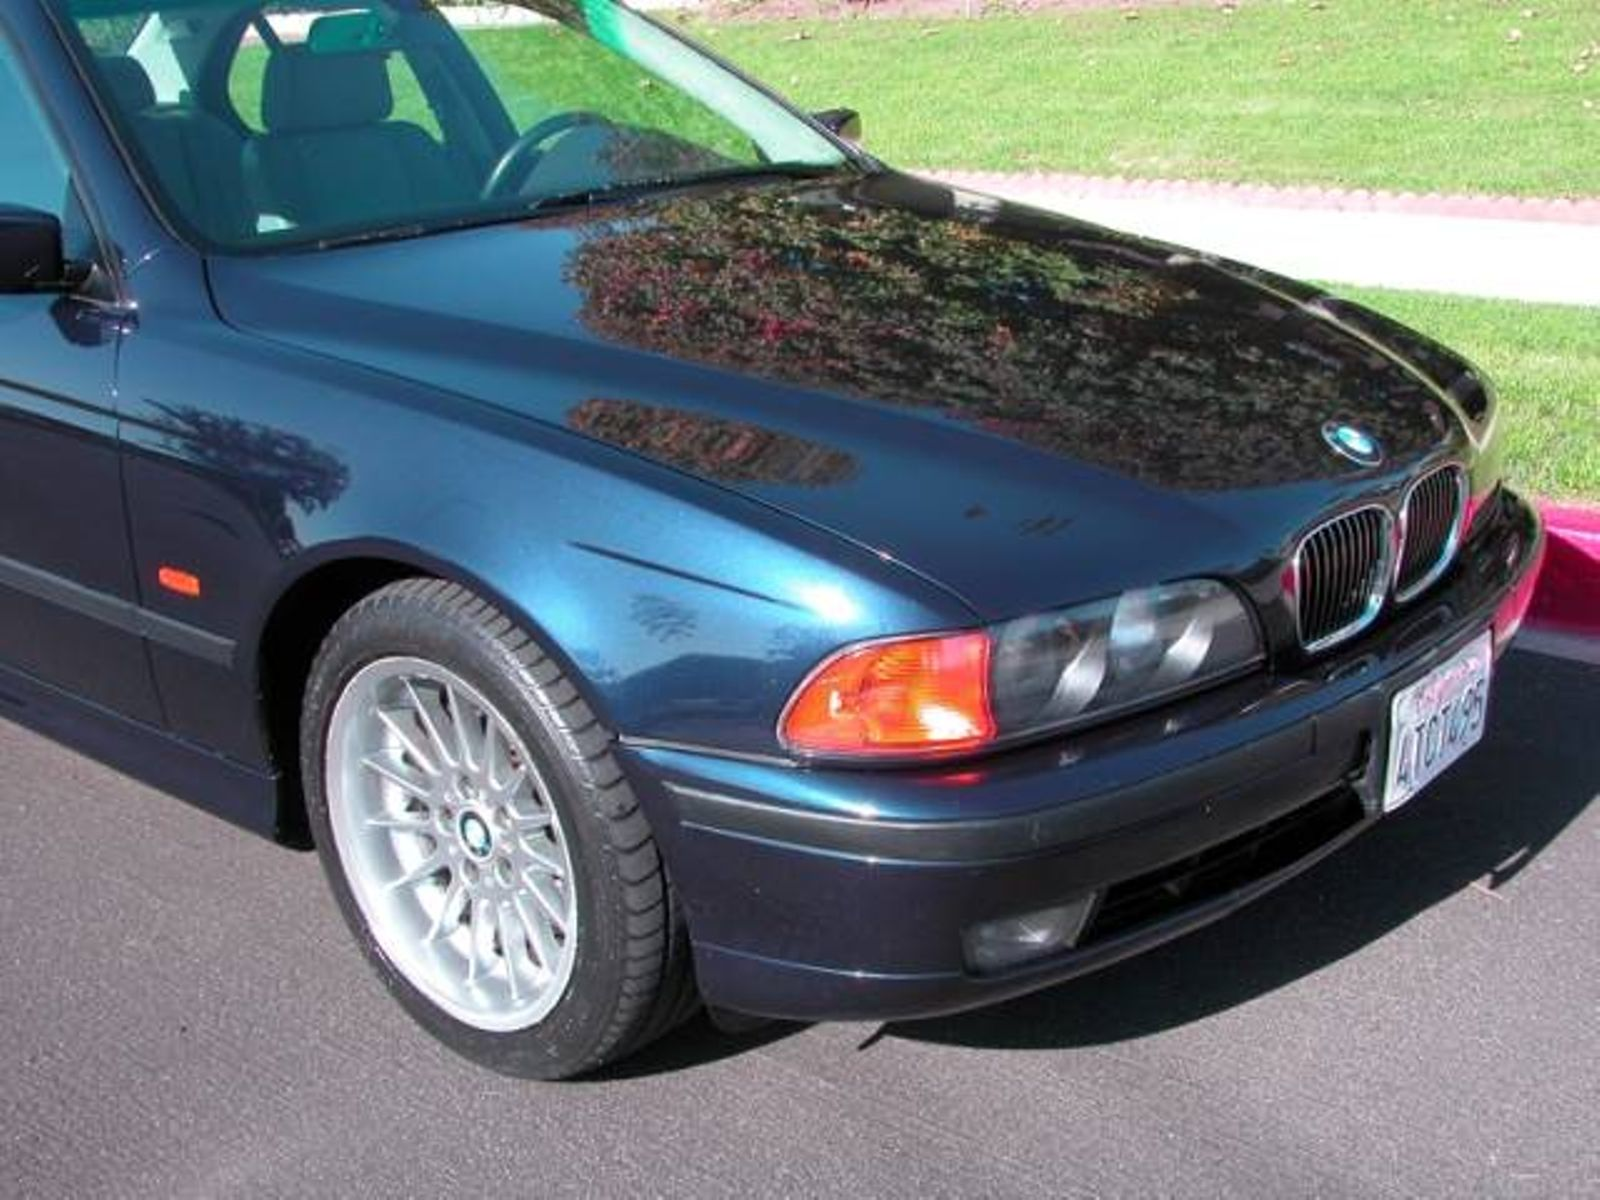 hight resolution of  2000 bmw 540i six speed super clean only 37000 miles city california auto fitness class benz